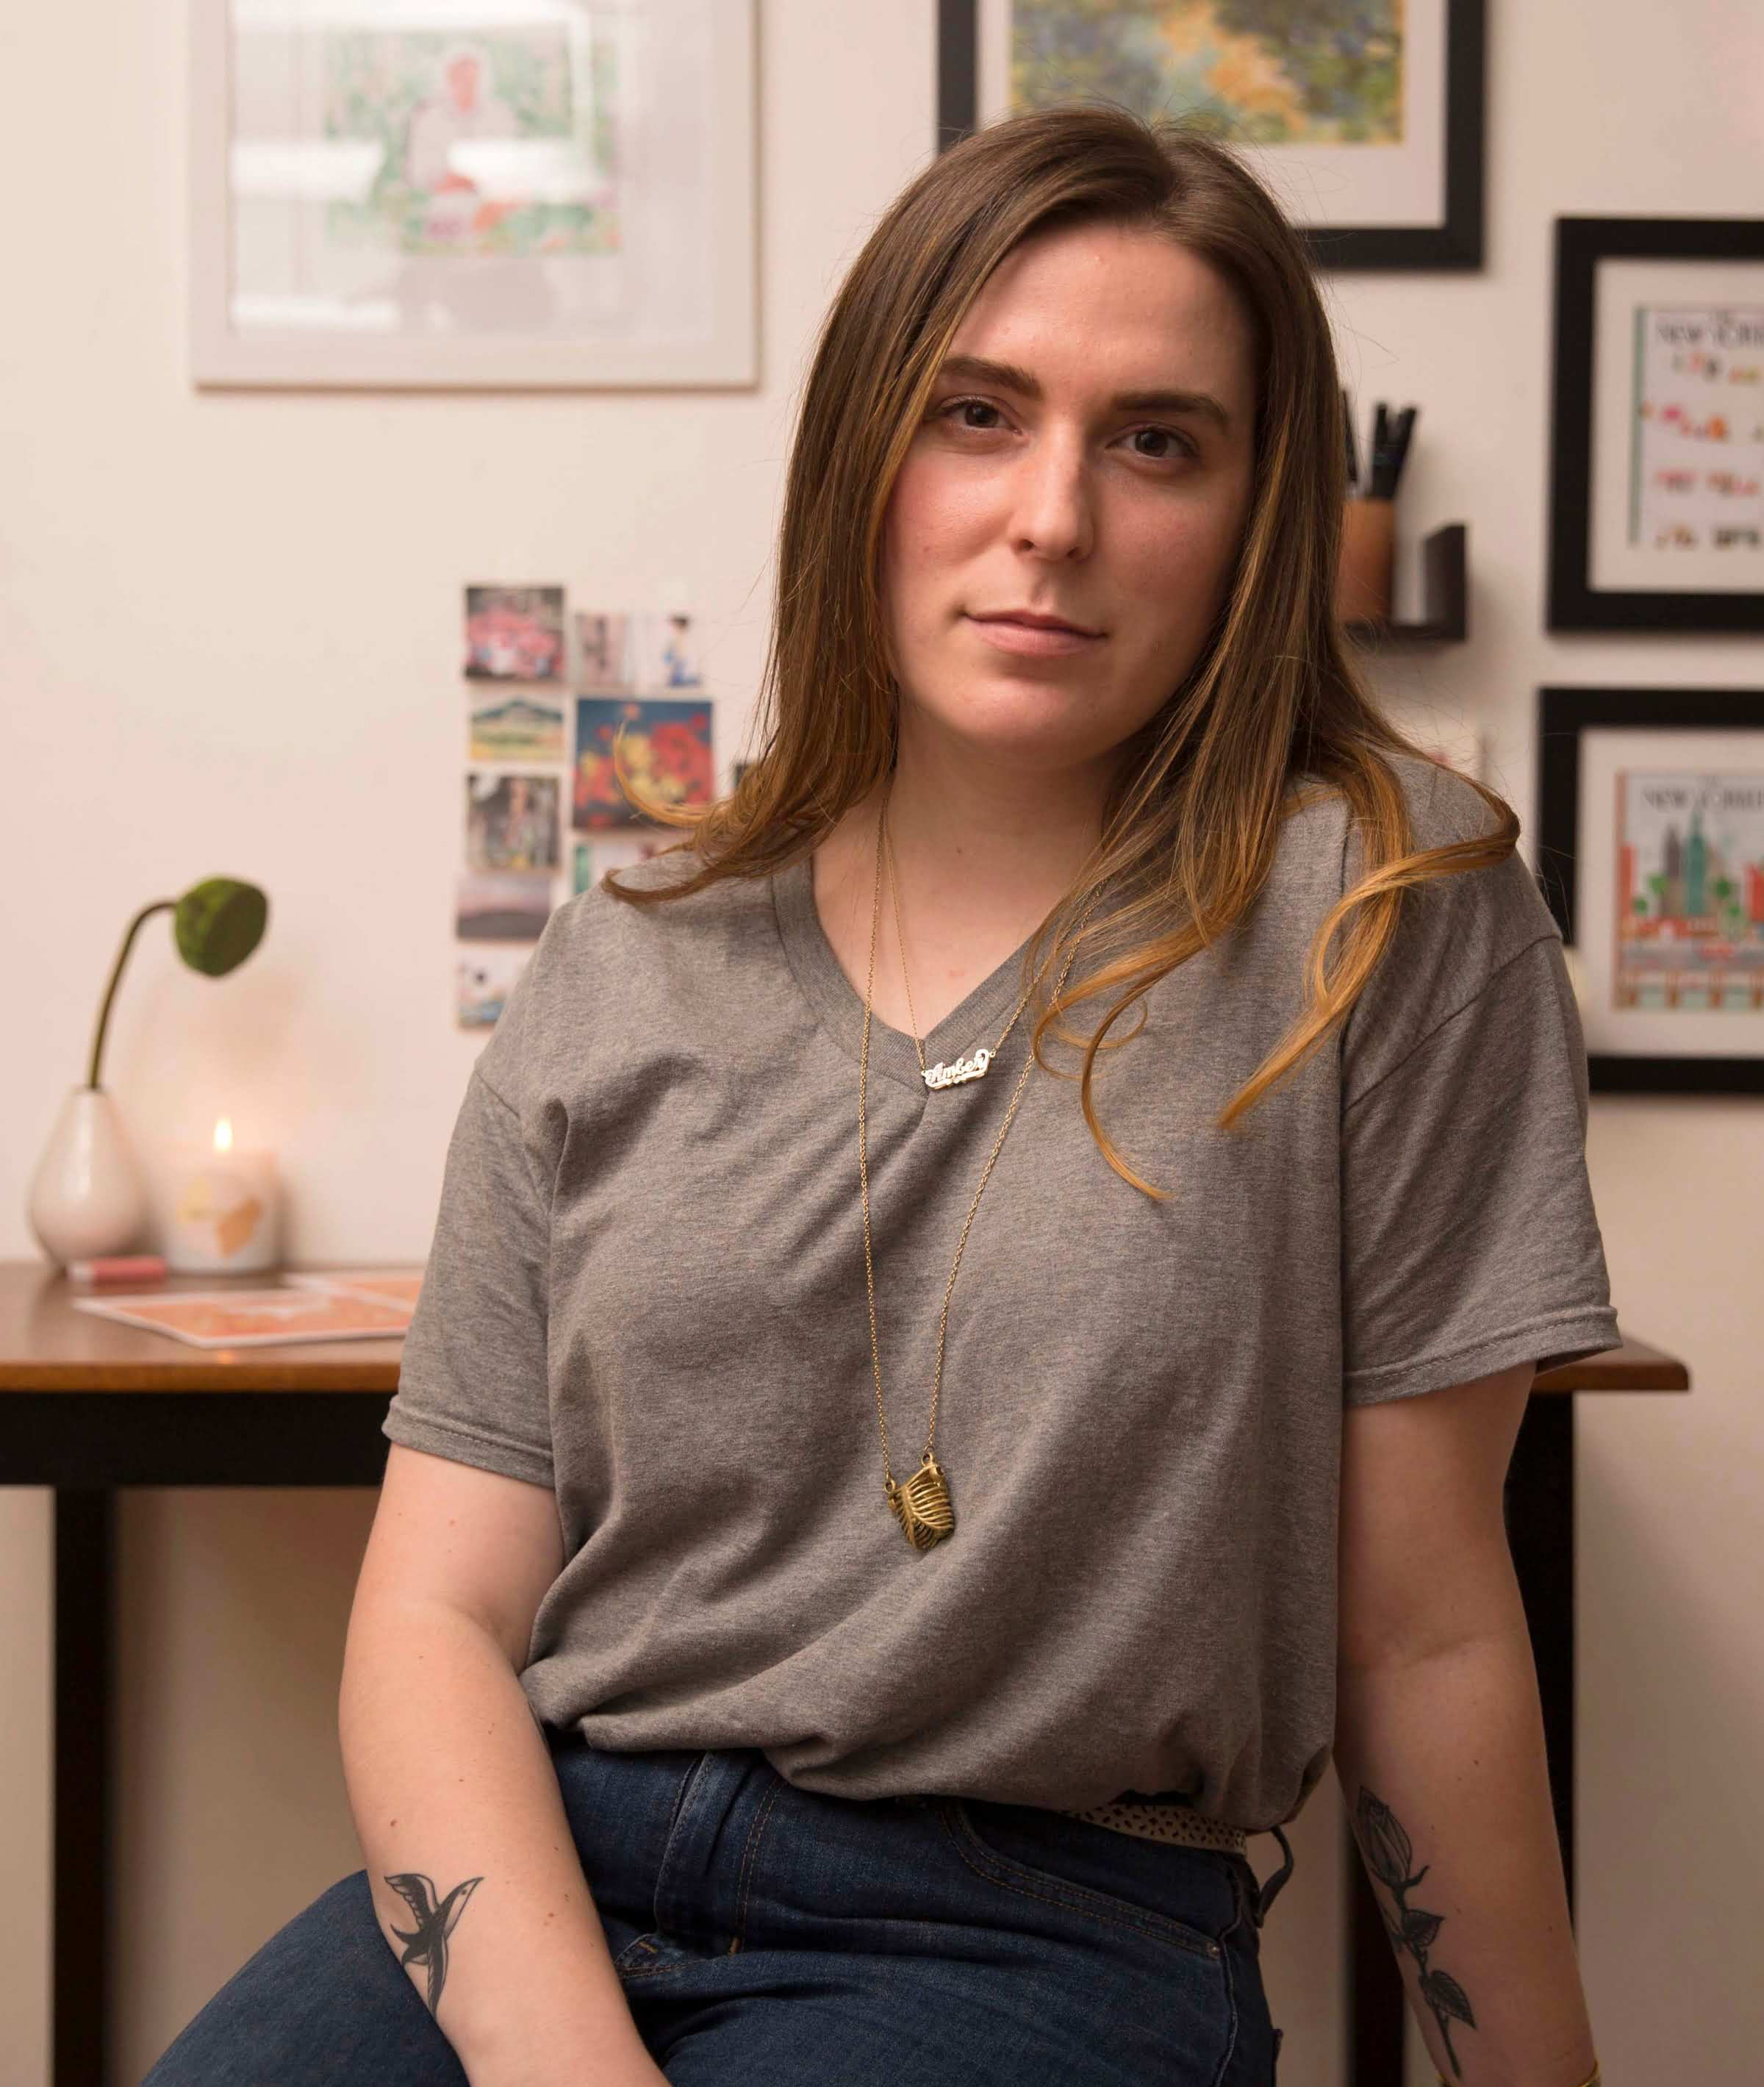 Dismantling Stereotypes Through Art with Amber Vittoria